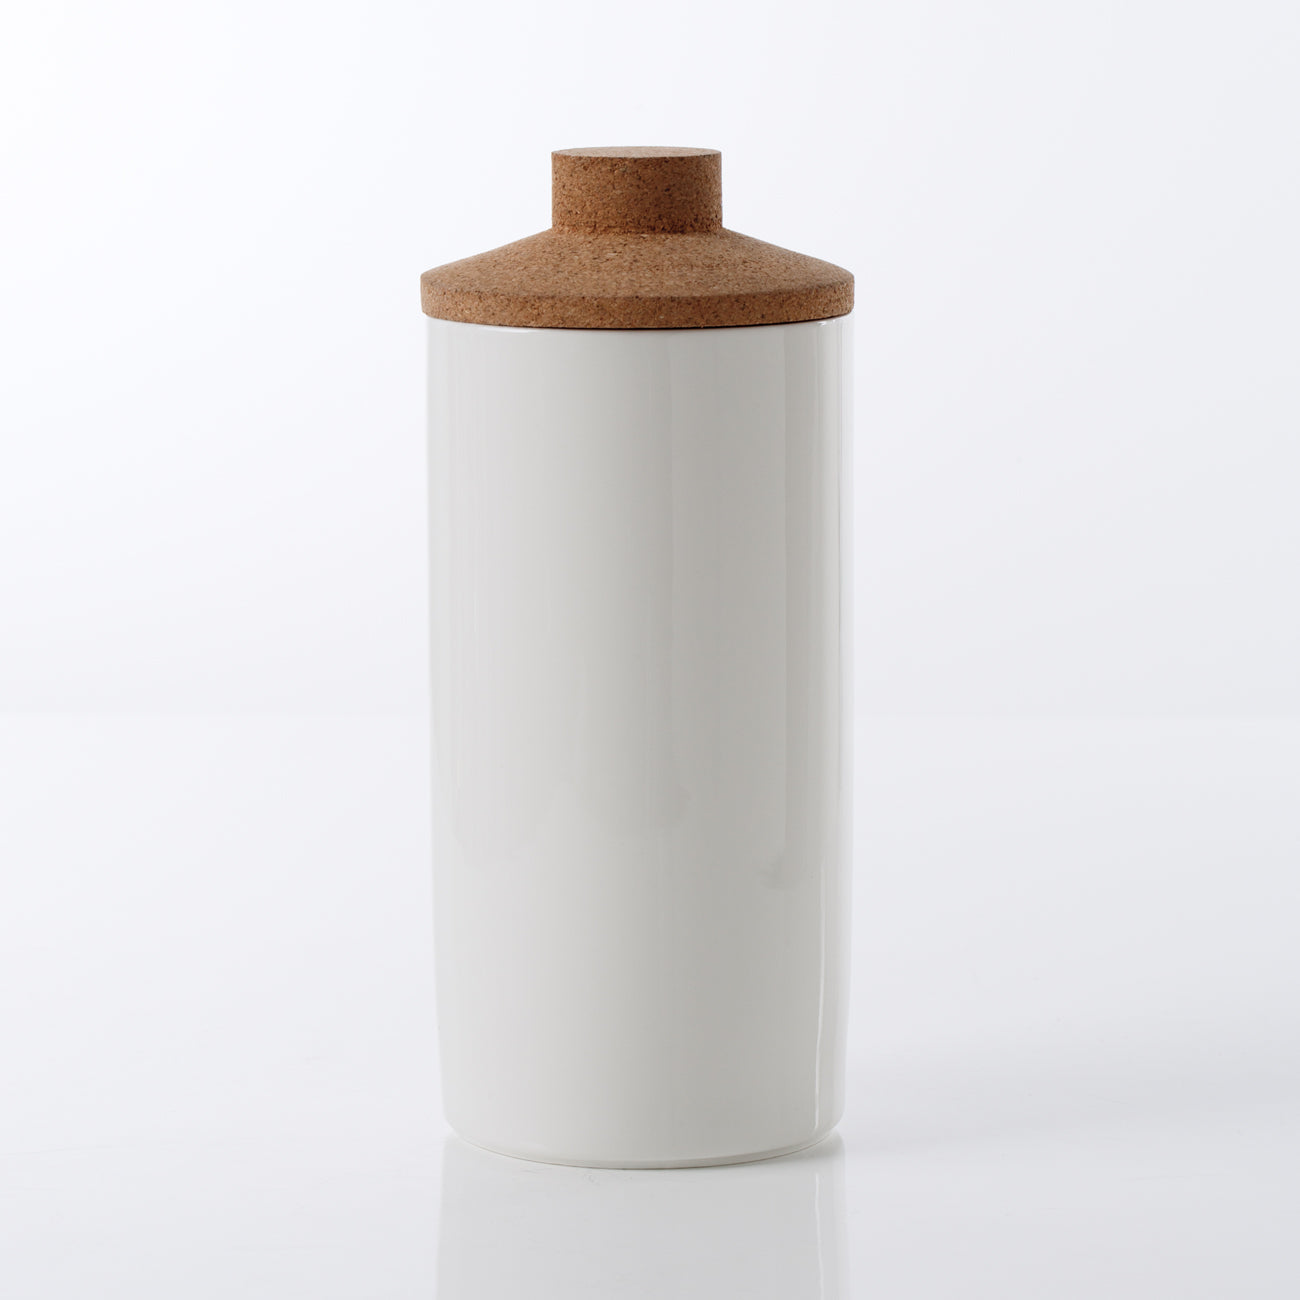 Ceramic Canister with Cork Top